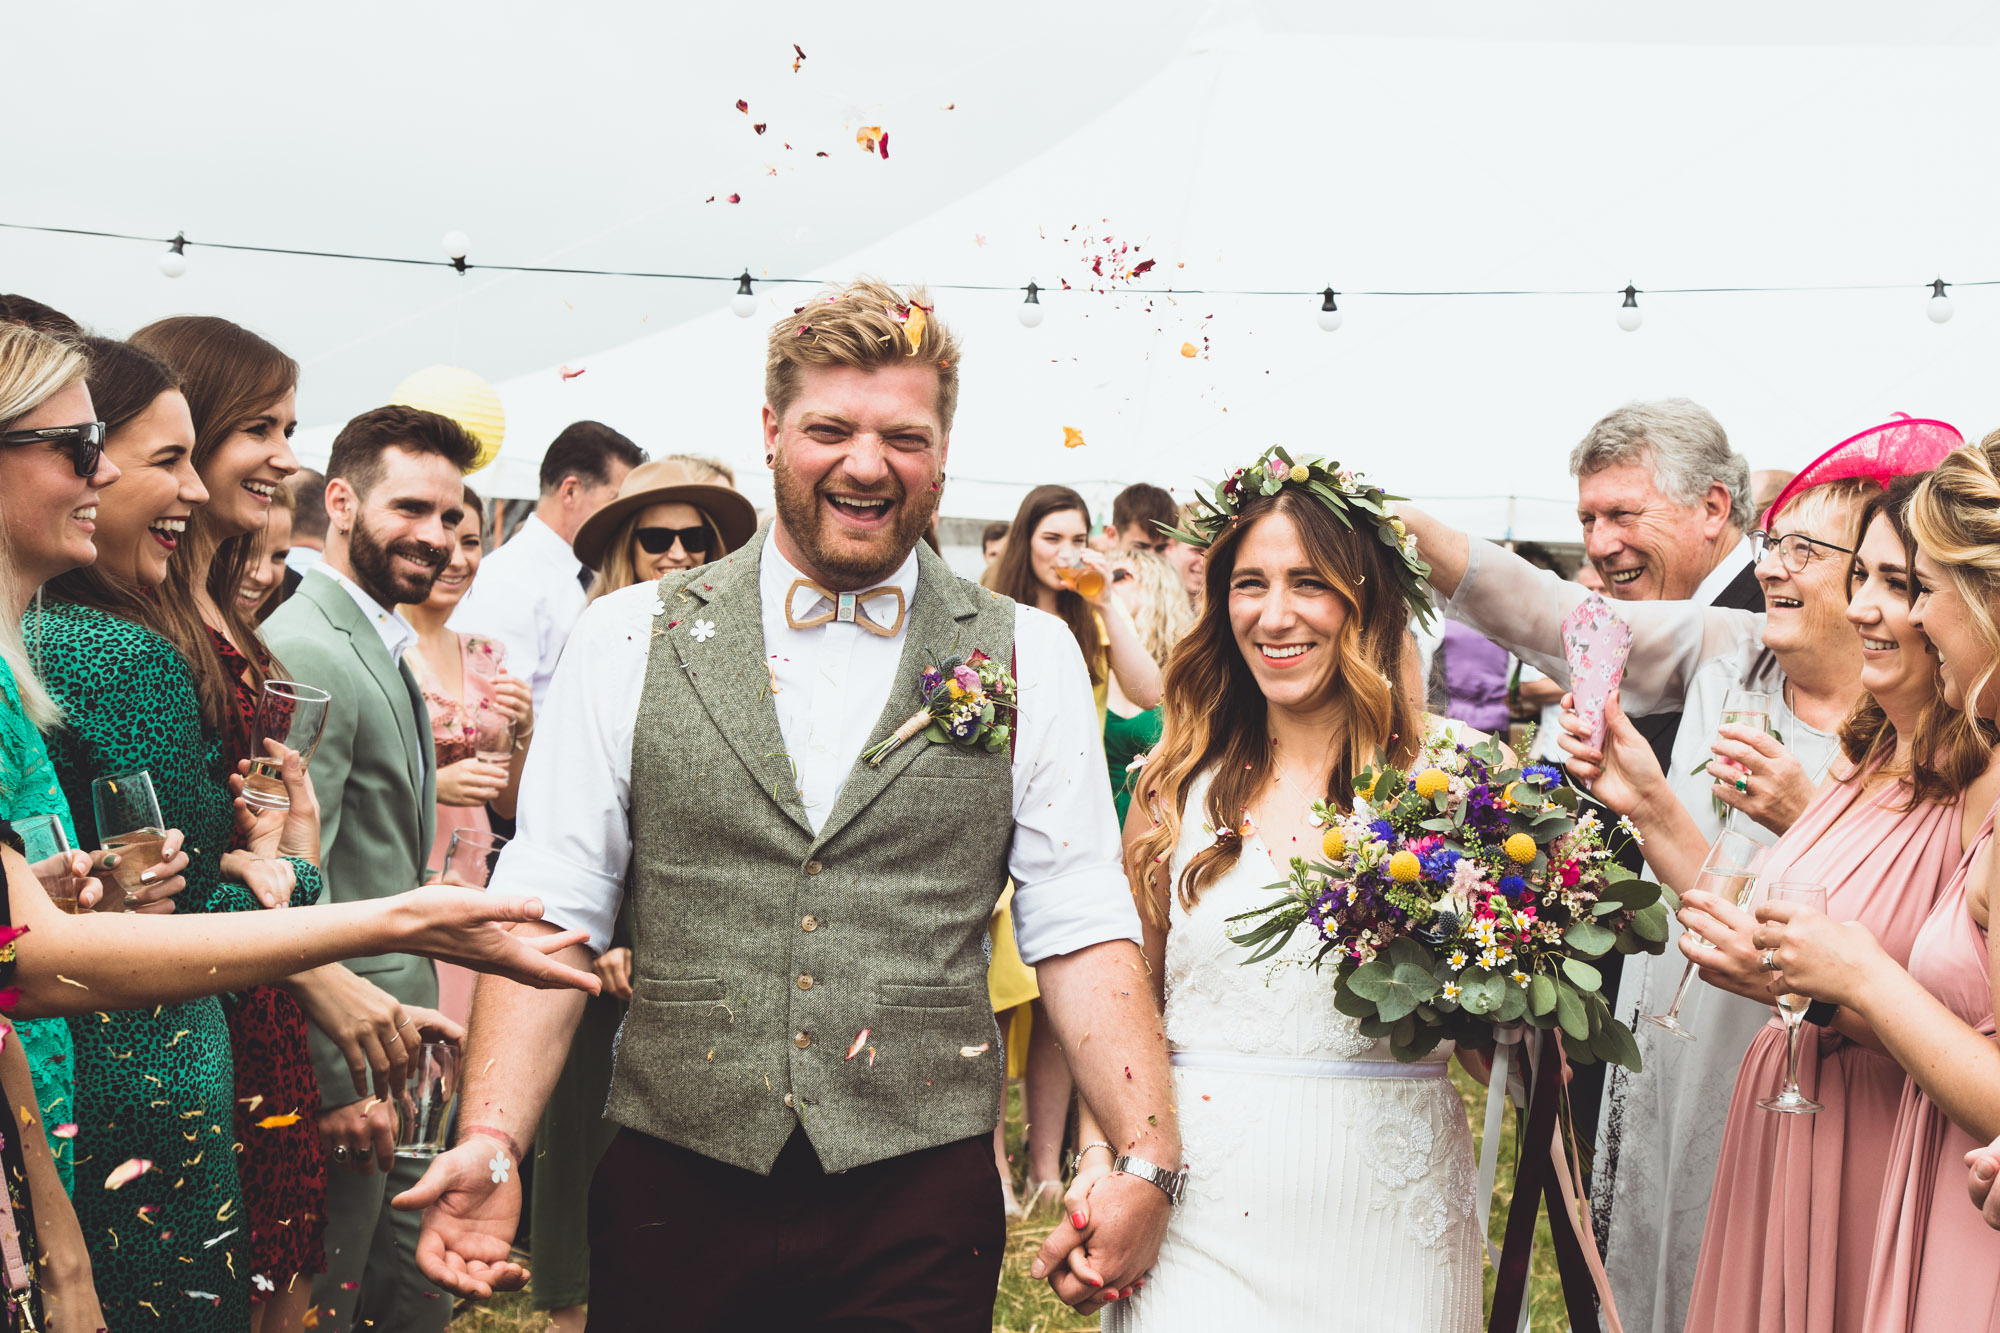 Check out more South Wales Festival Weddings here